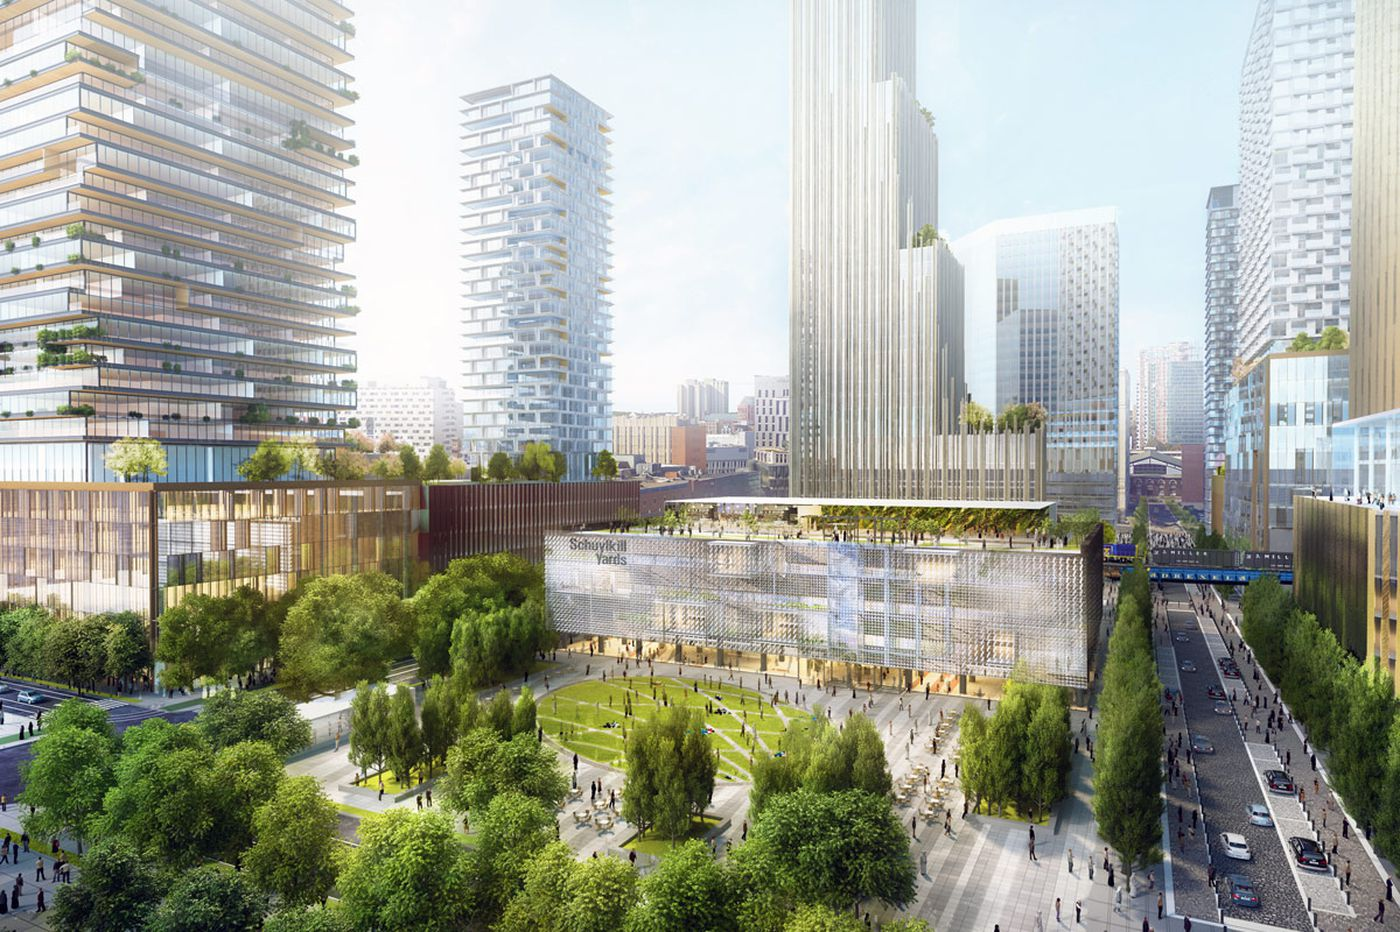 Schuylkill Yards first phase gets Council committee approval, despite neighbors' unrest